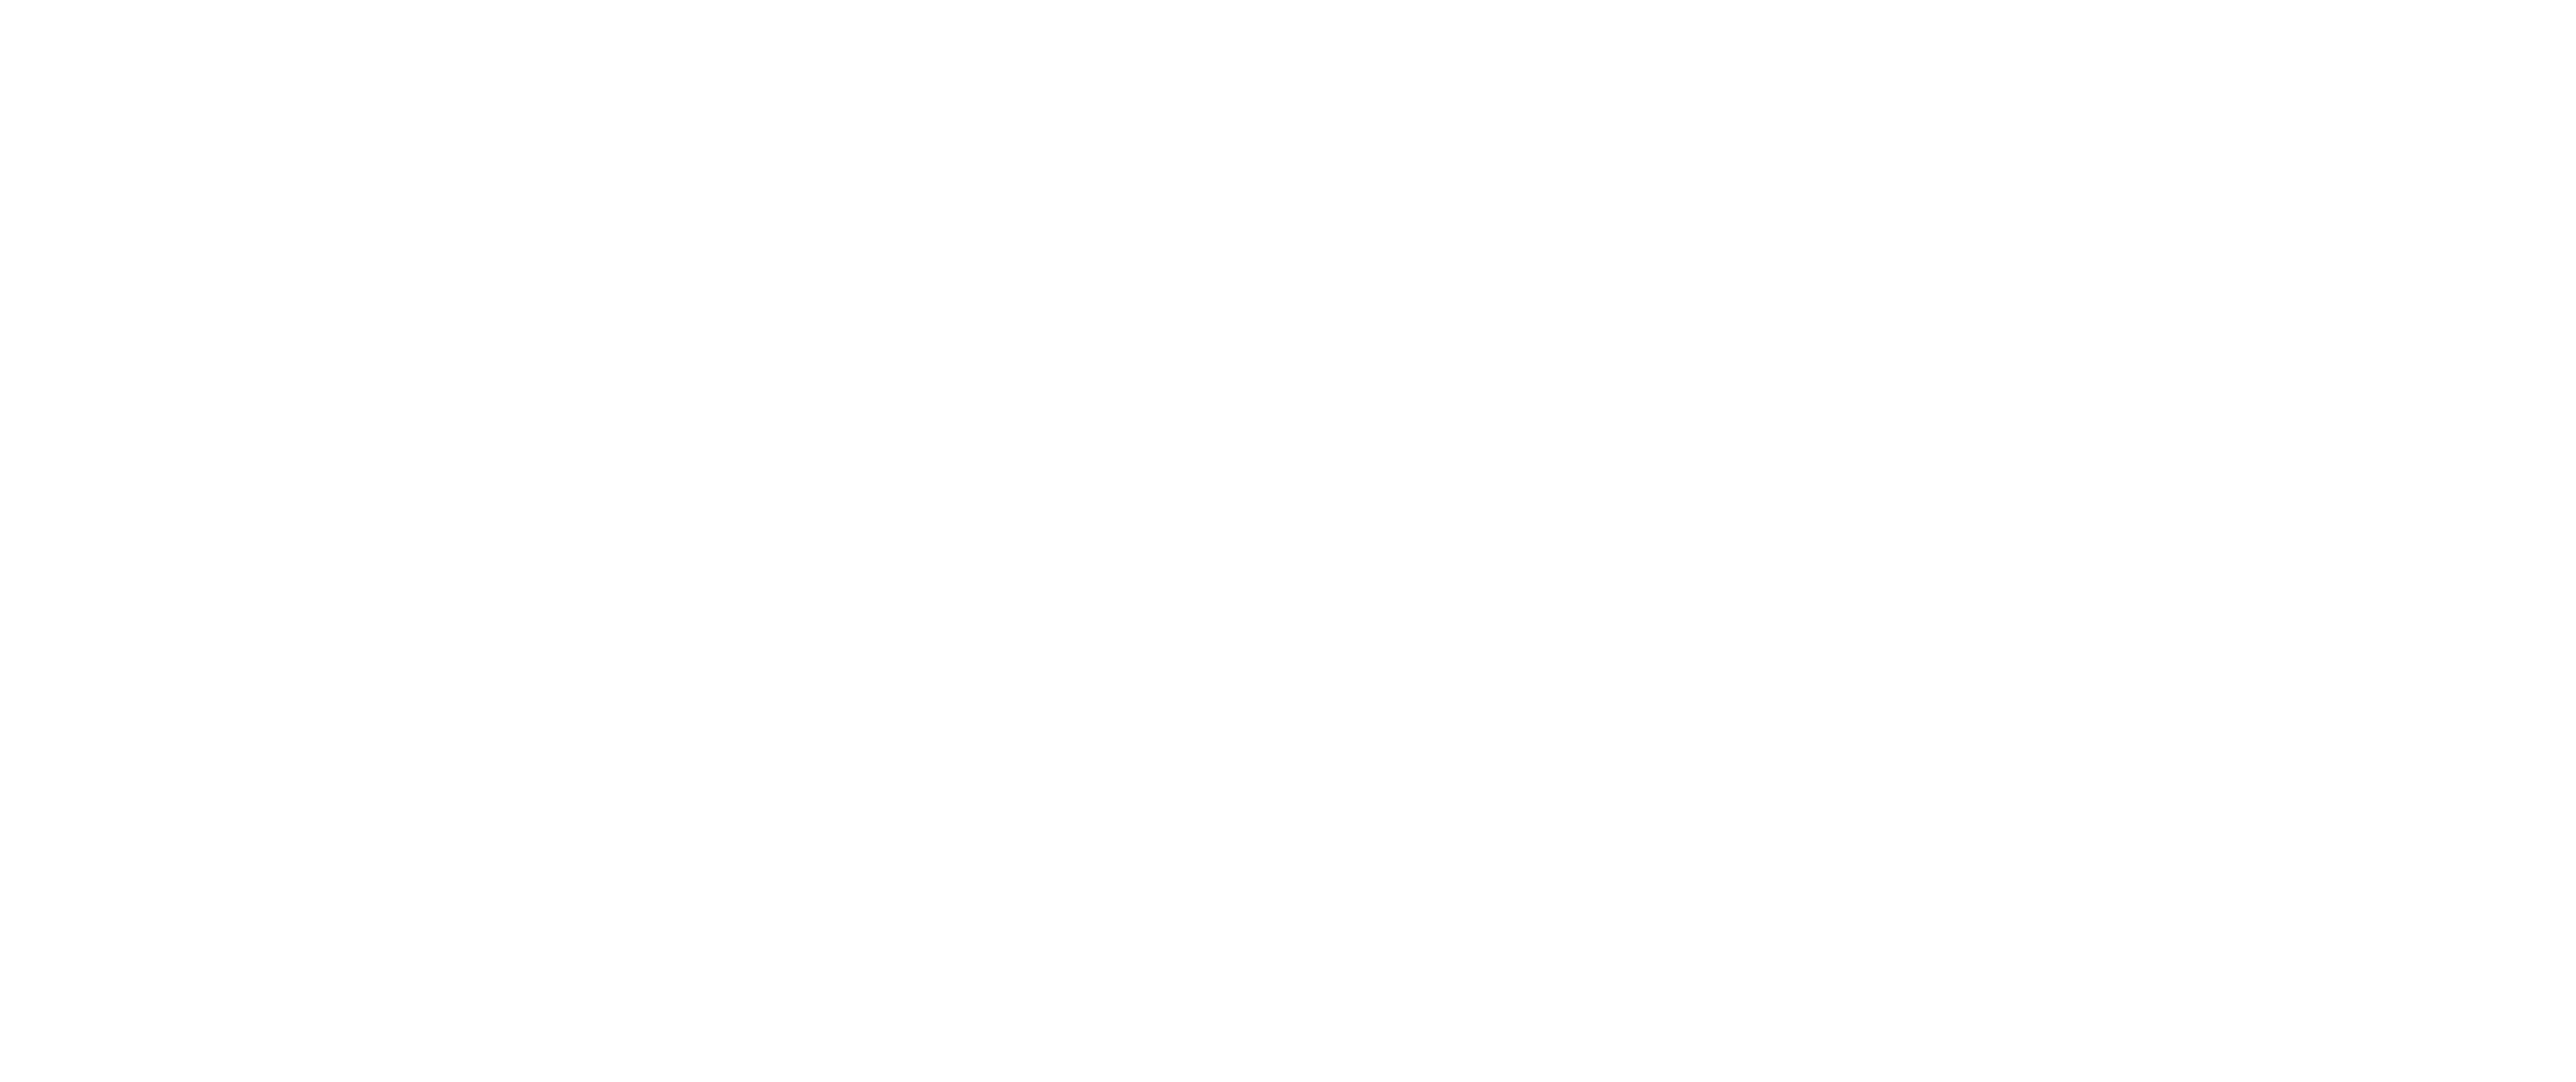 AfricanMoove